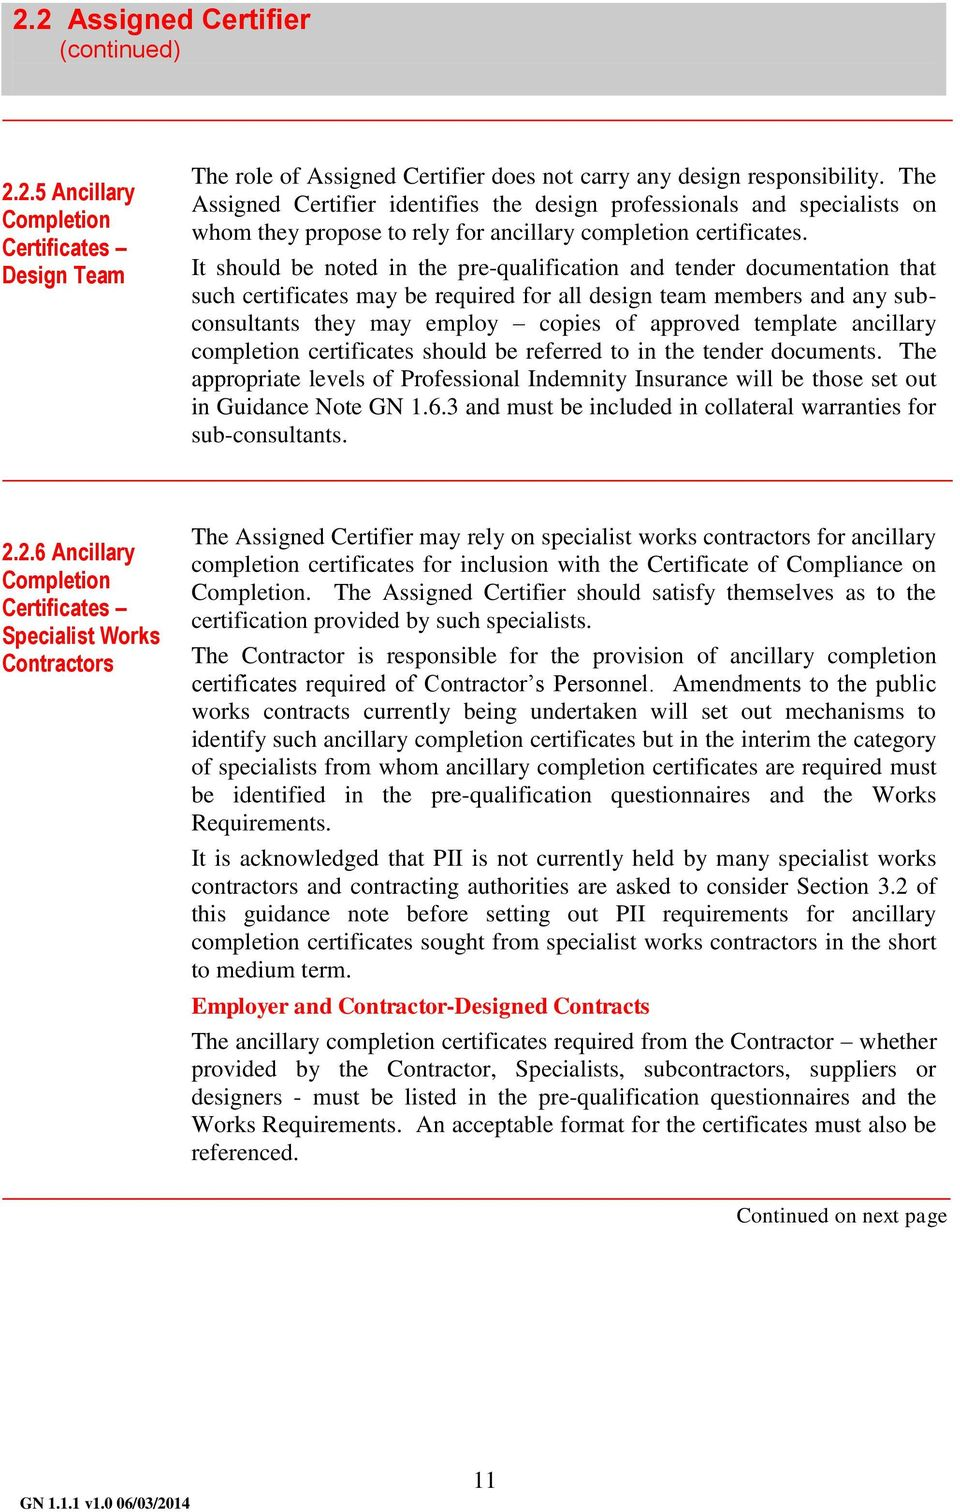 It should be noted in the pre-qualification and tender documentation that such certificates may be required for all design team members and any subconsultants they may employ copies of approved